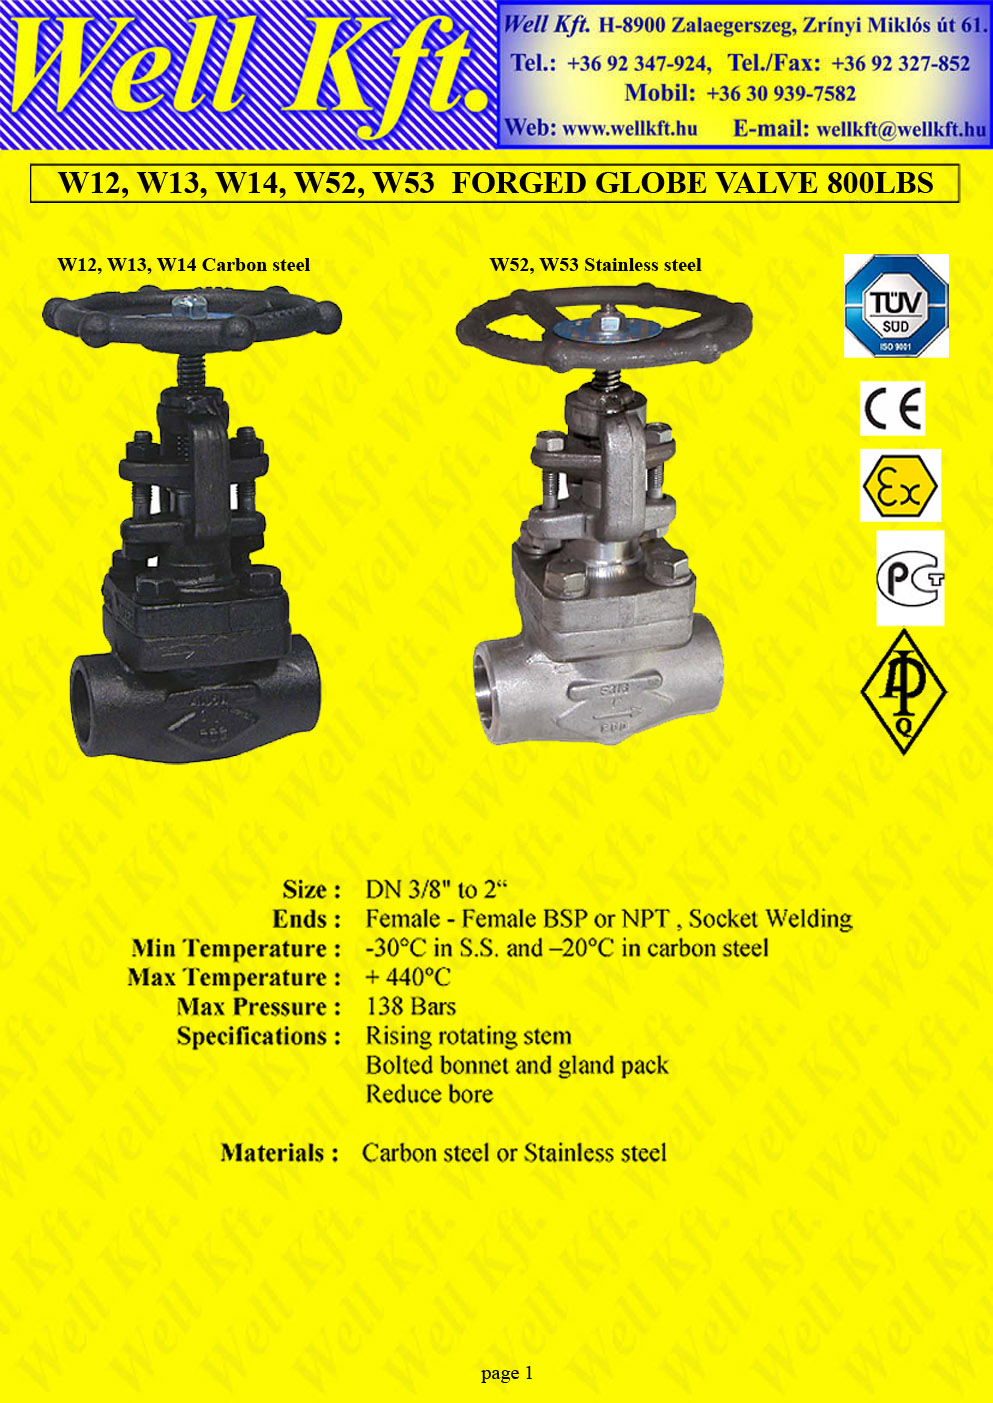 Globe valve stainless steel, forged carbon steel PN 138  (1.)